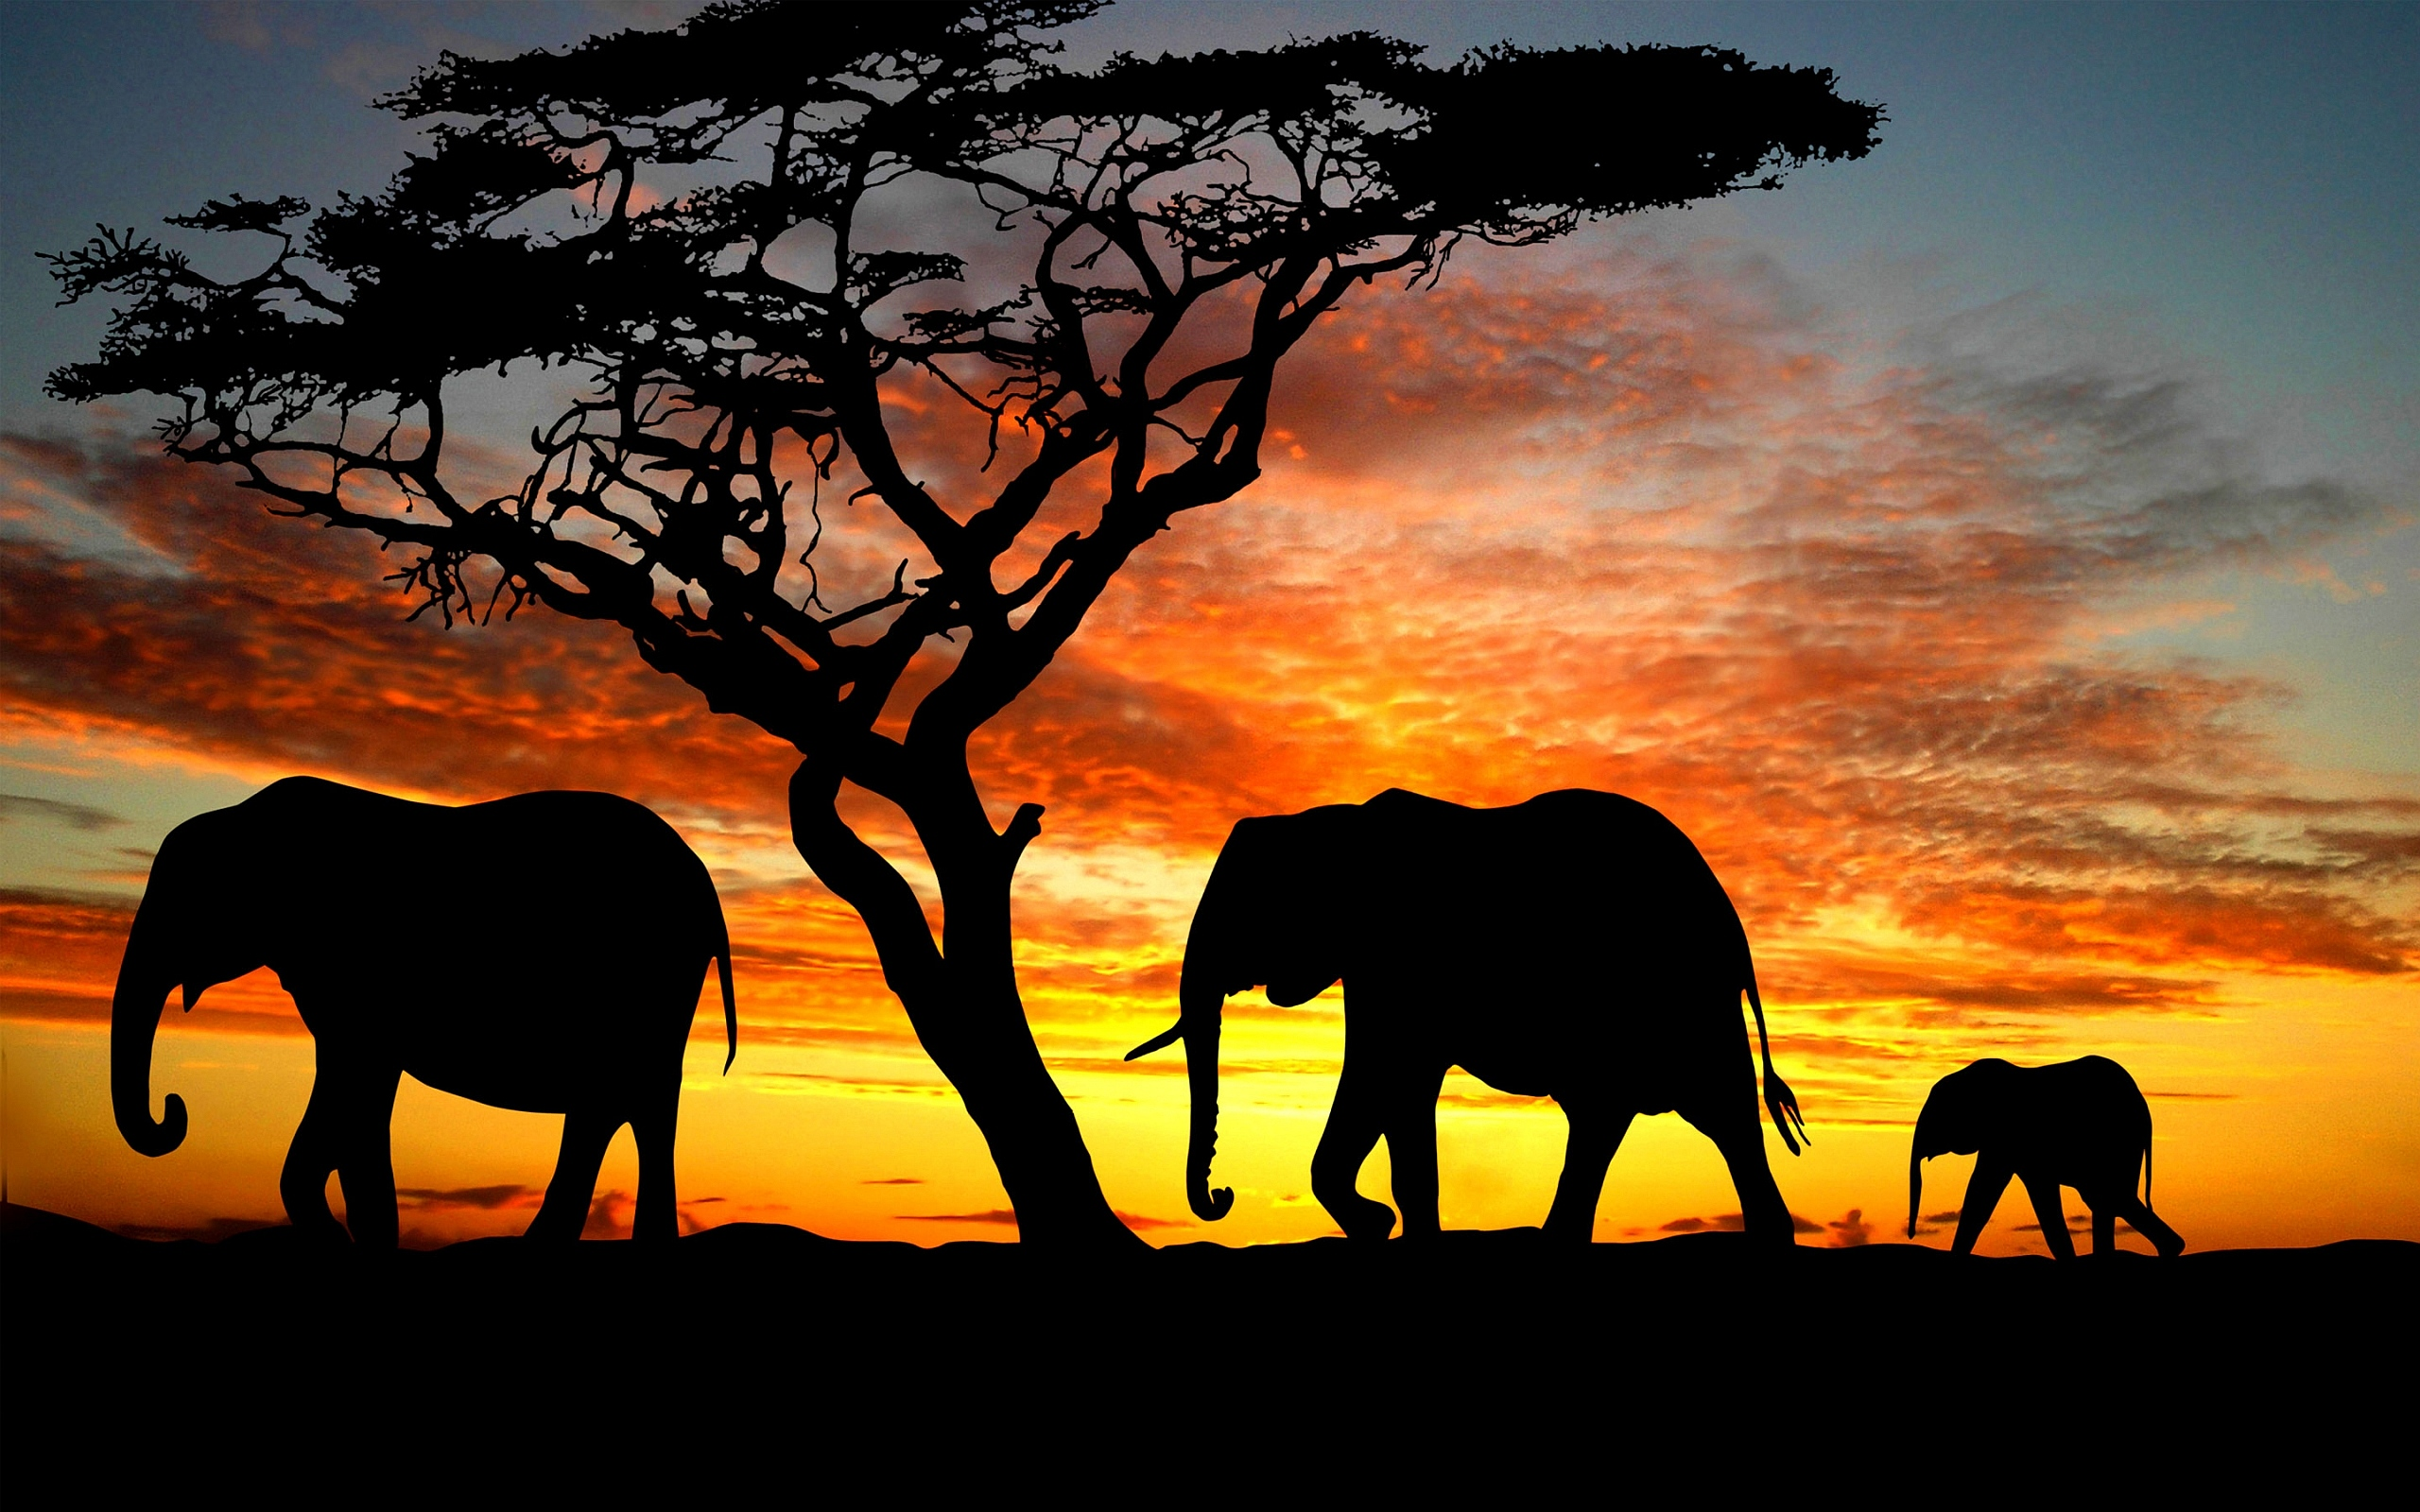 Silhouette Wallpaper Wildlife - HD Desktop Wallpapers